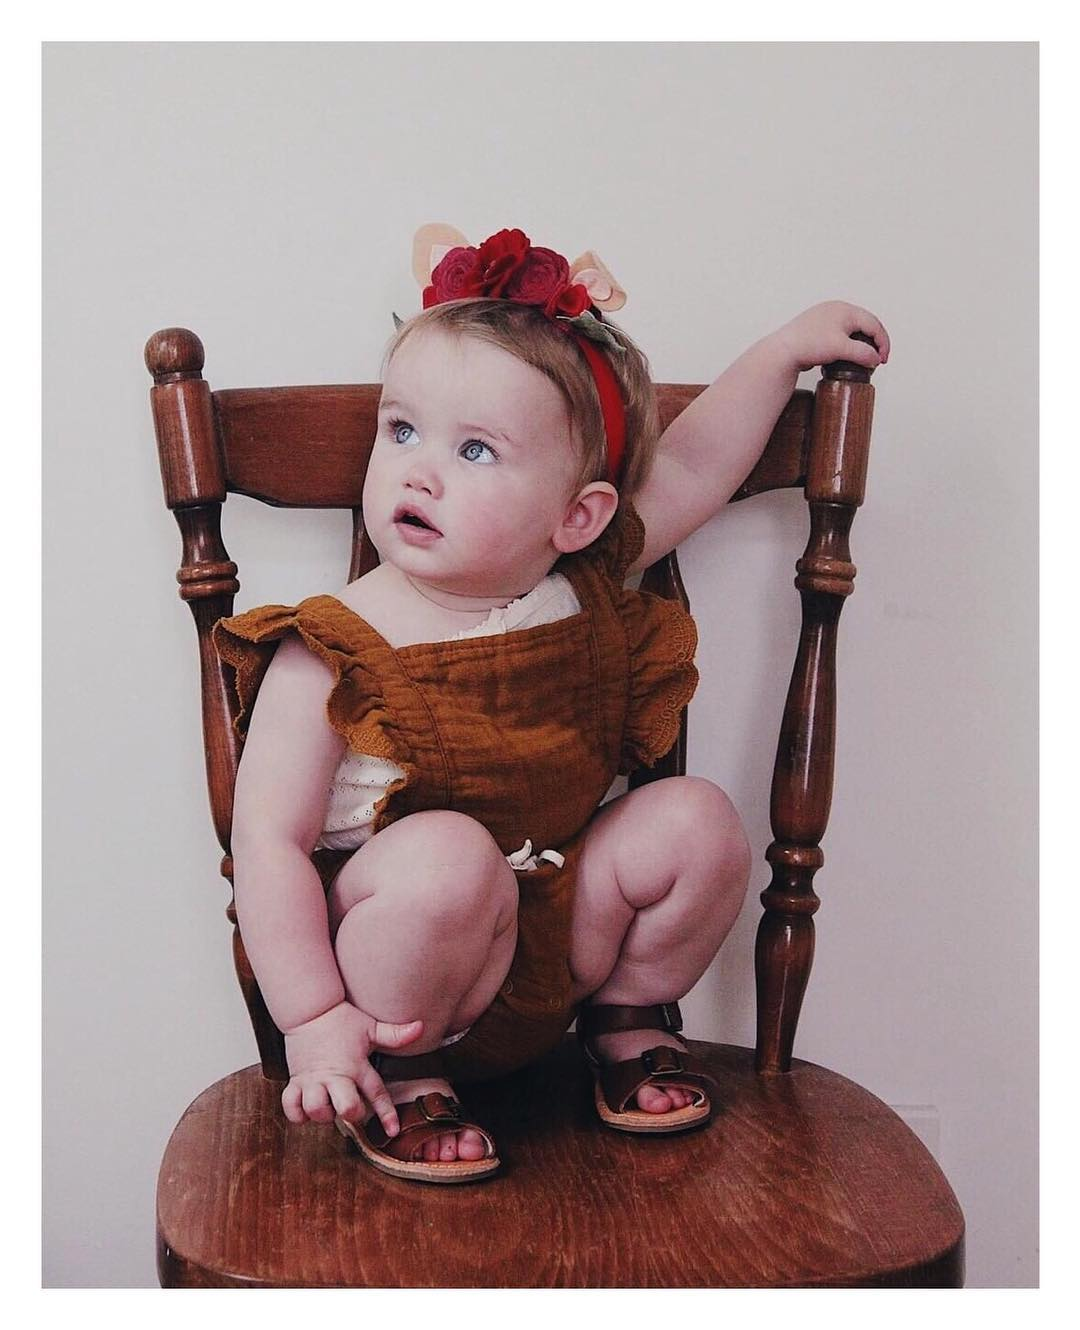 Quality_baby_shoes_for_children,_toddlers_and_babies._Soft_soles,_natural_leather _5481_width=480x480